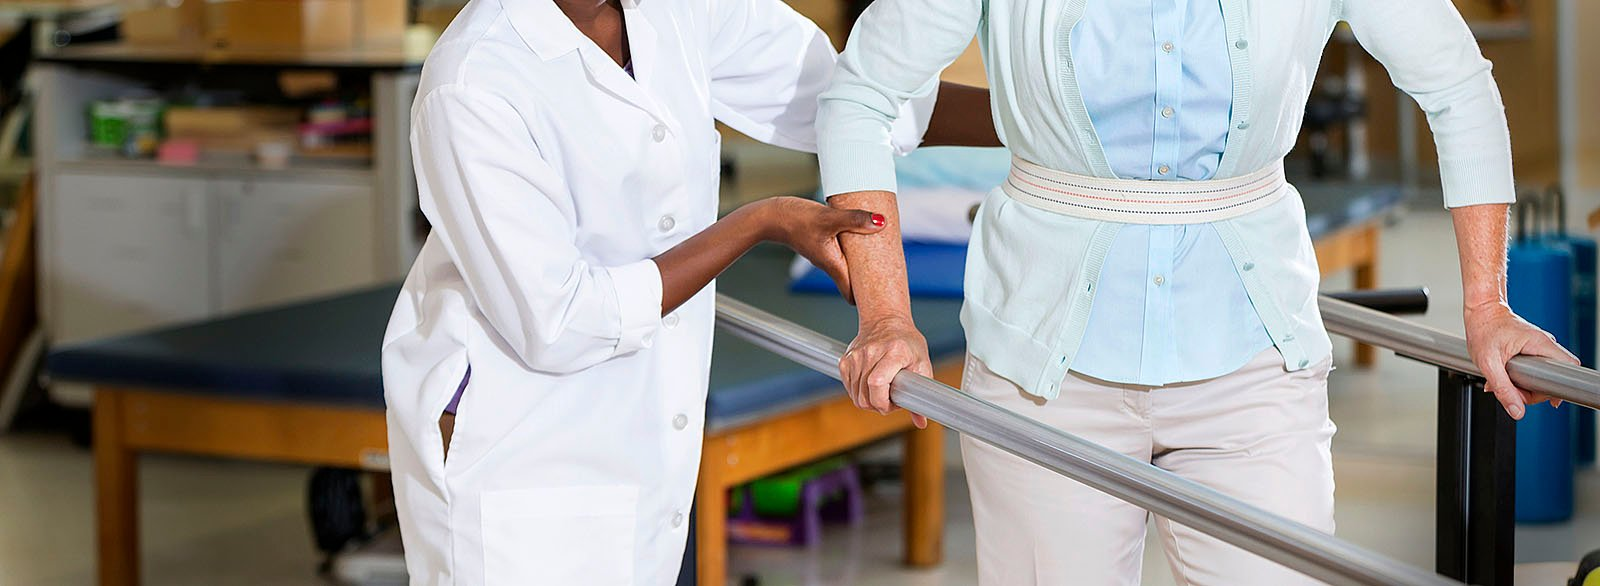 Occupational therapist working with patient